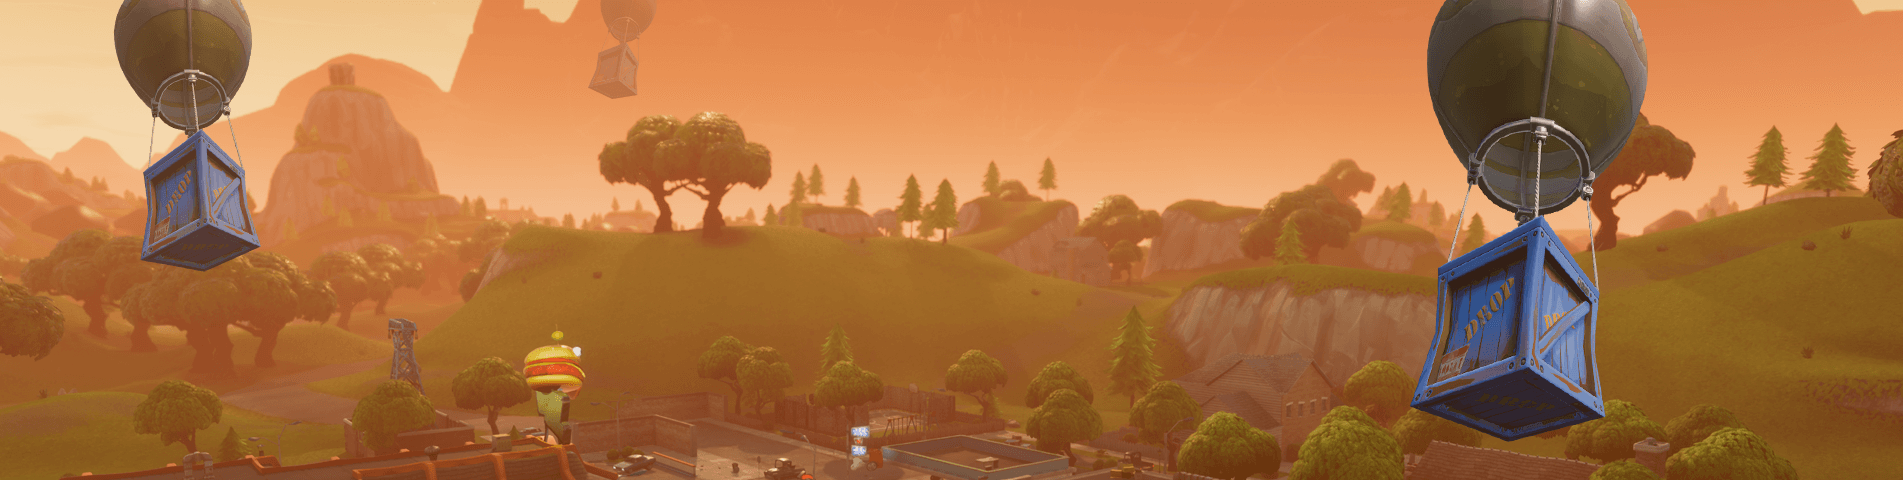 Fortnite Fortnitemares Update Patch Notes